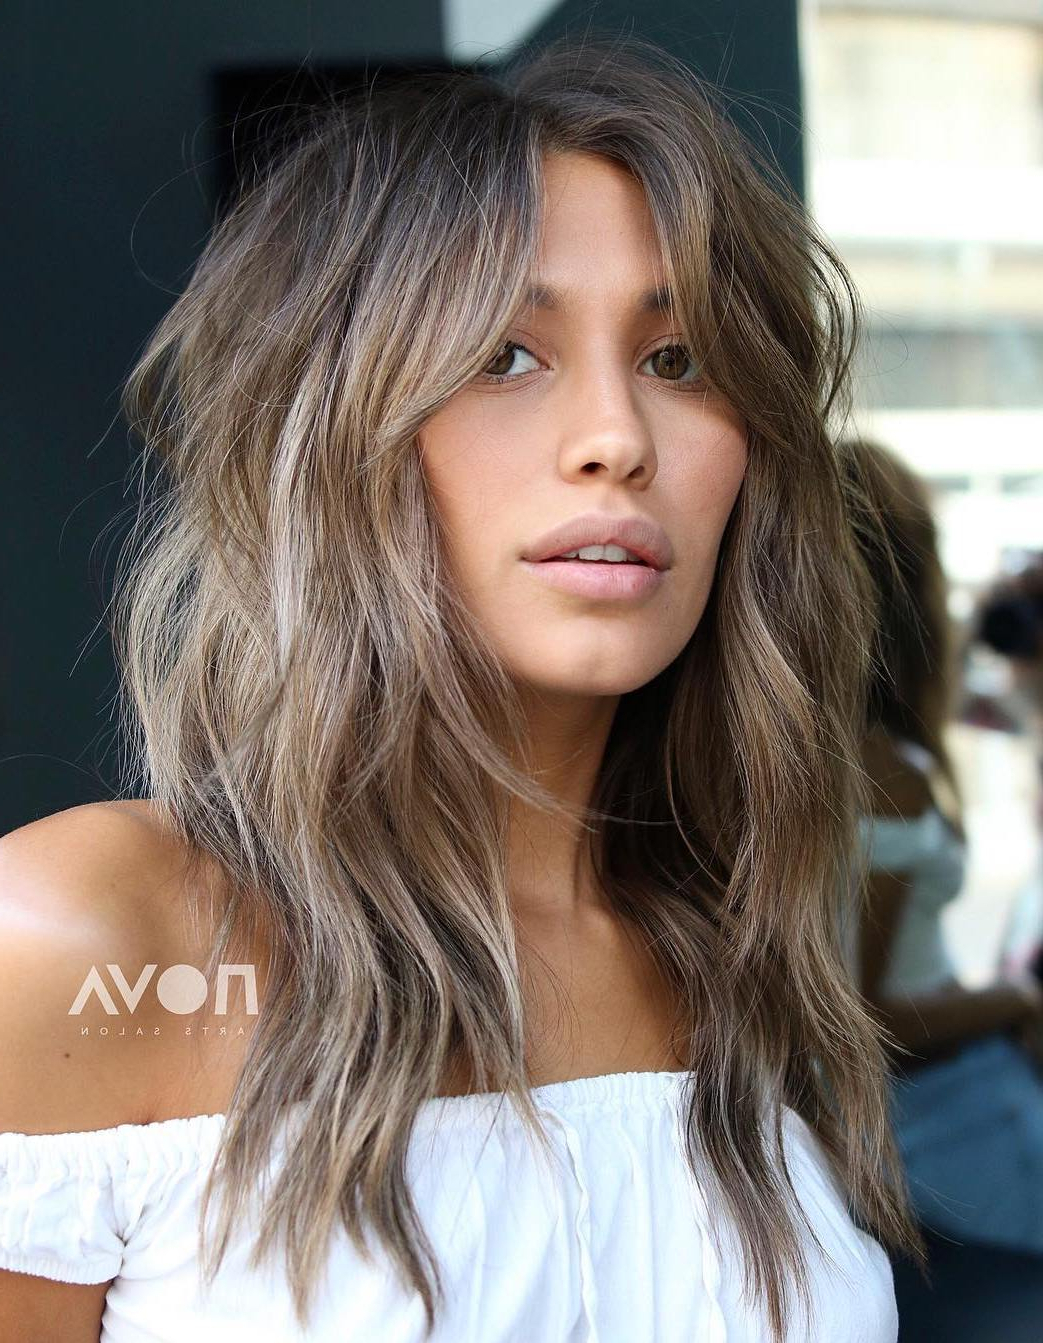 40 Modern Shag Haircuts For Women To Make A Splash Intended For Shaggy Haircuts With Bangs And Longer Layers (View 7 of 20)